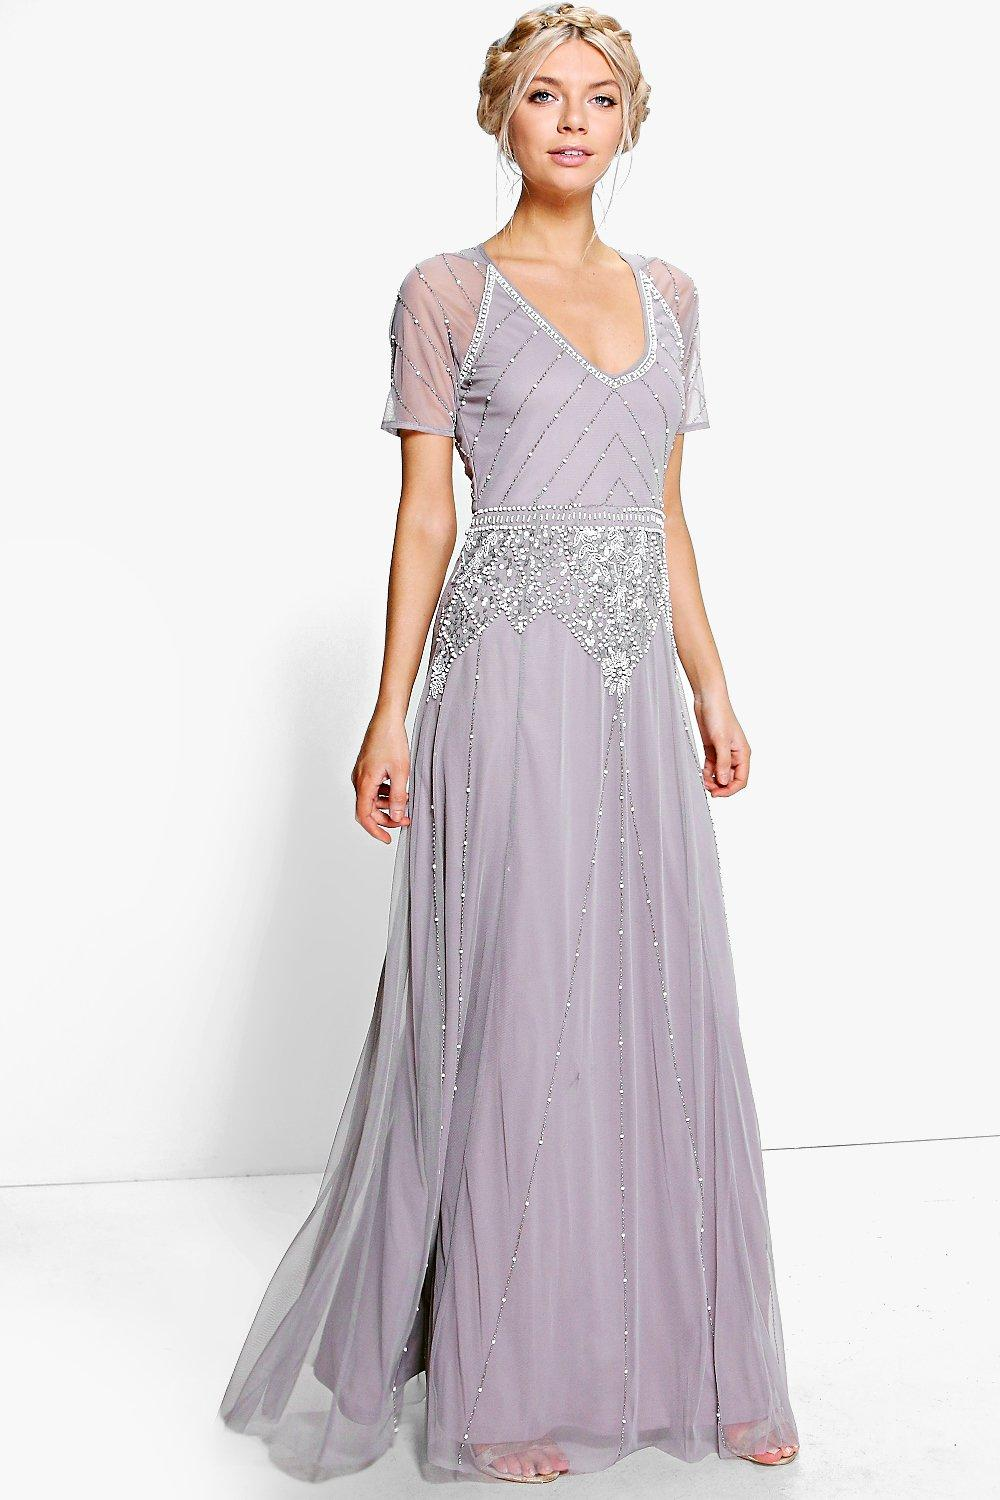 Vintage New Years Eve Dresses – Vintage Inspired Styles Boutique Beaded Cap Sleeve Maxi Dress  AT vintagedancer.com